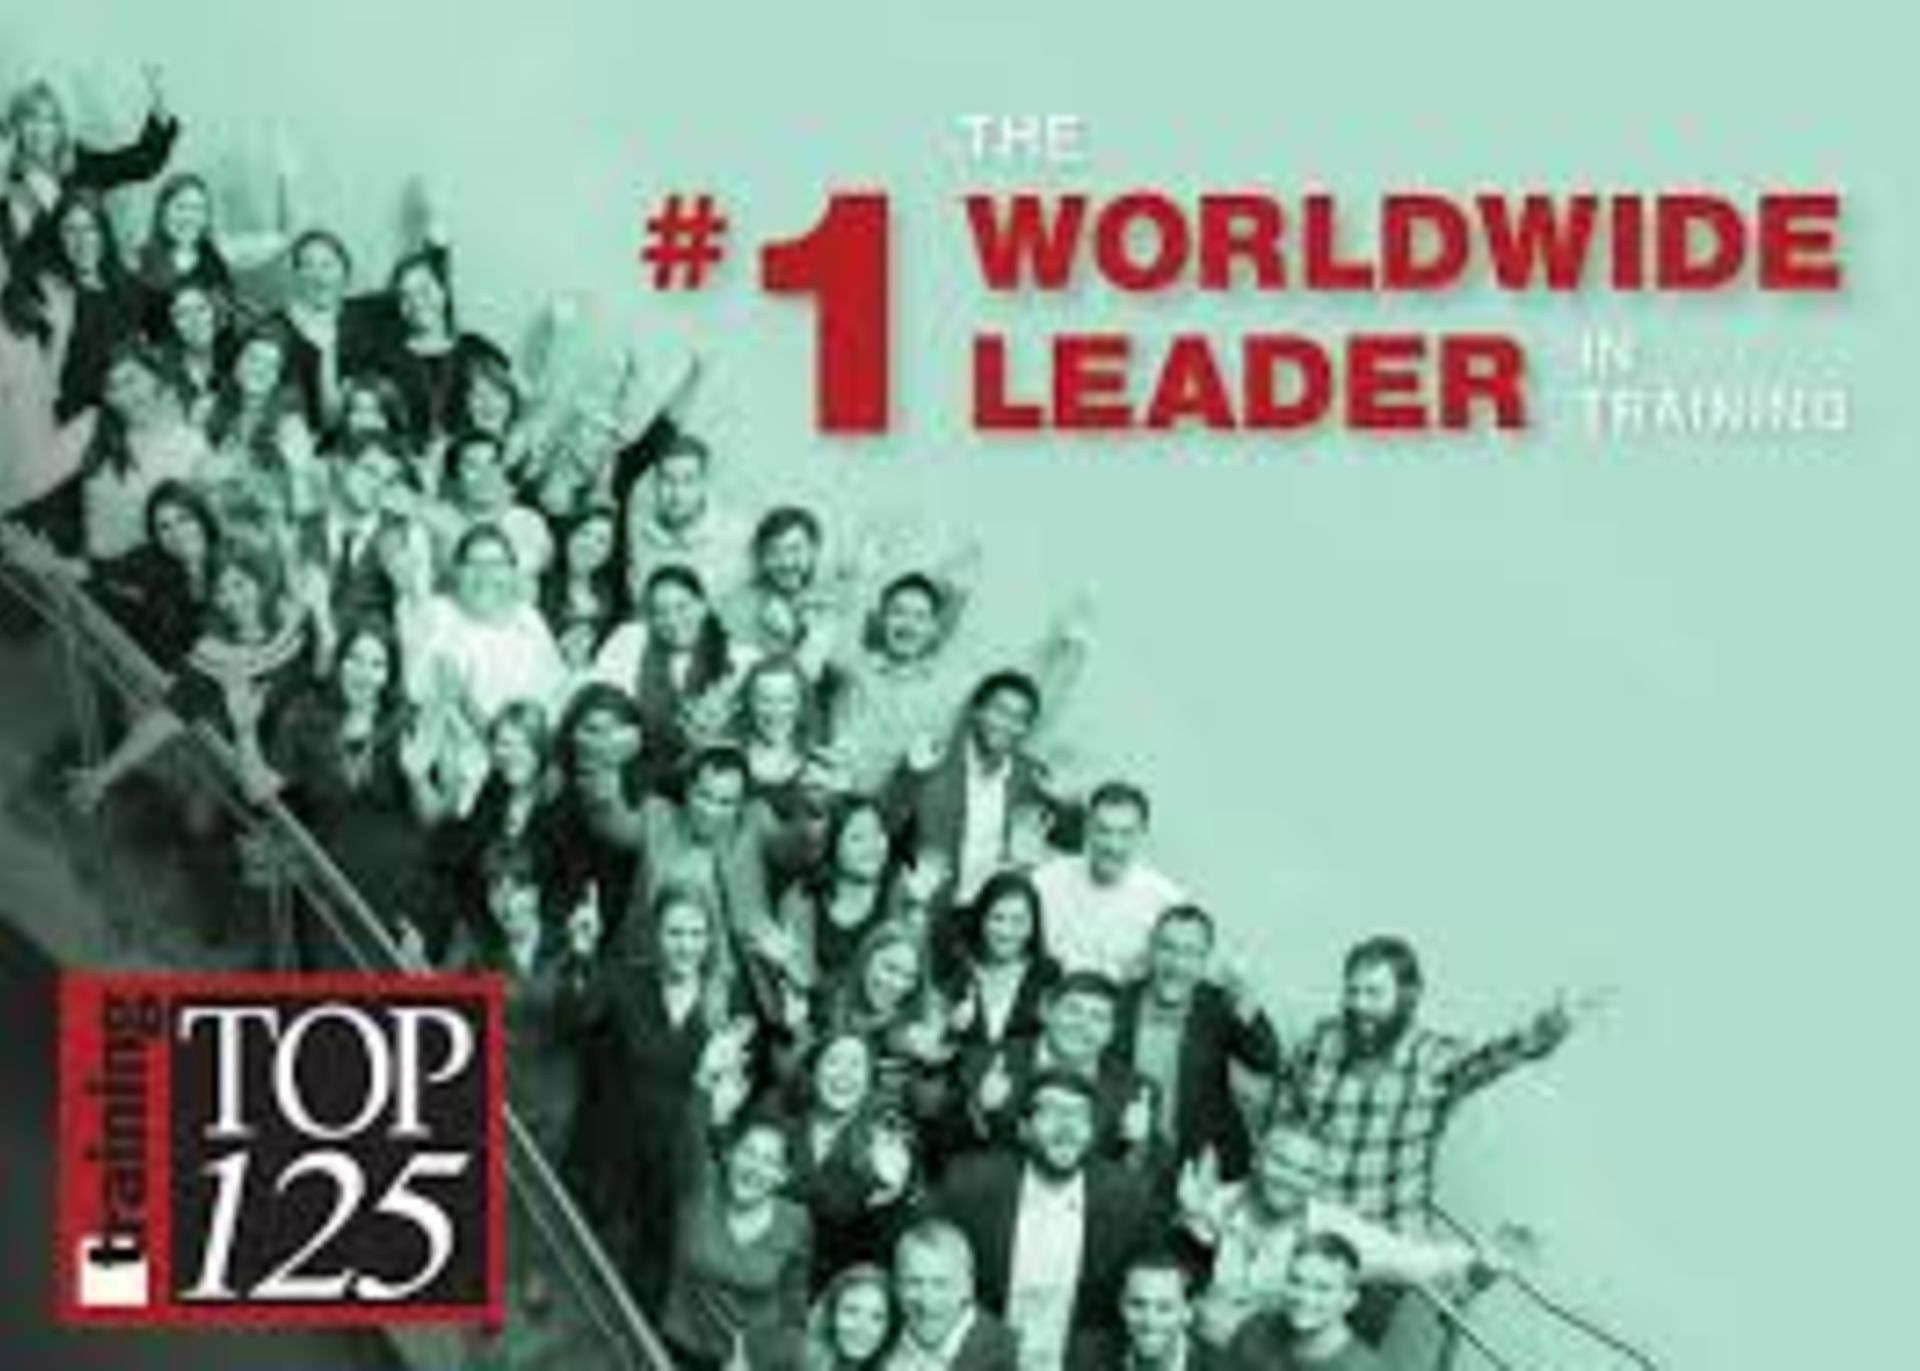 KW – The #1 Worldwide Leading in Training